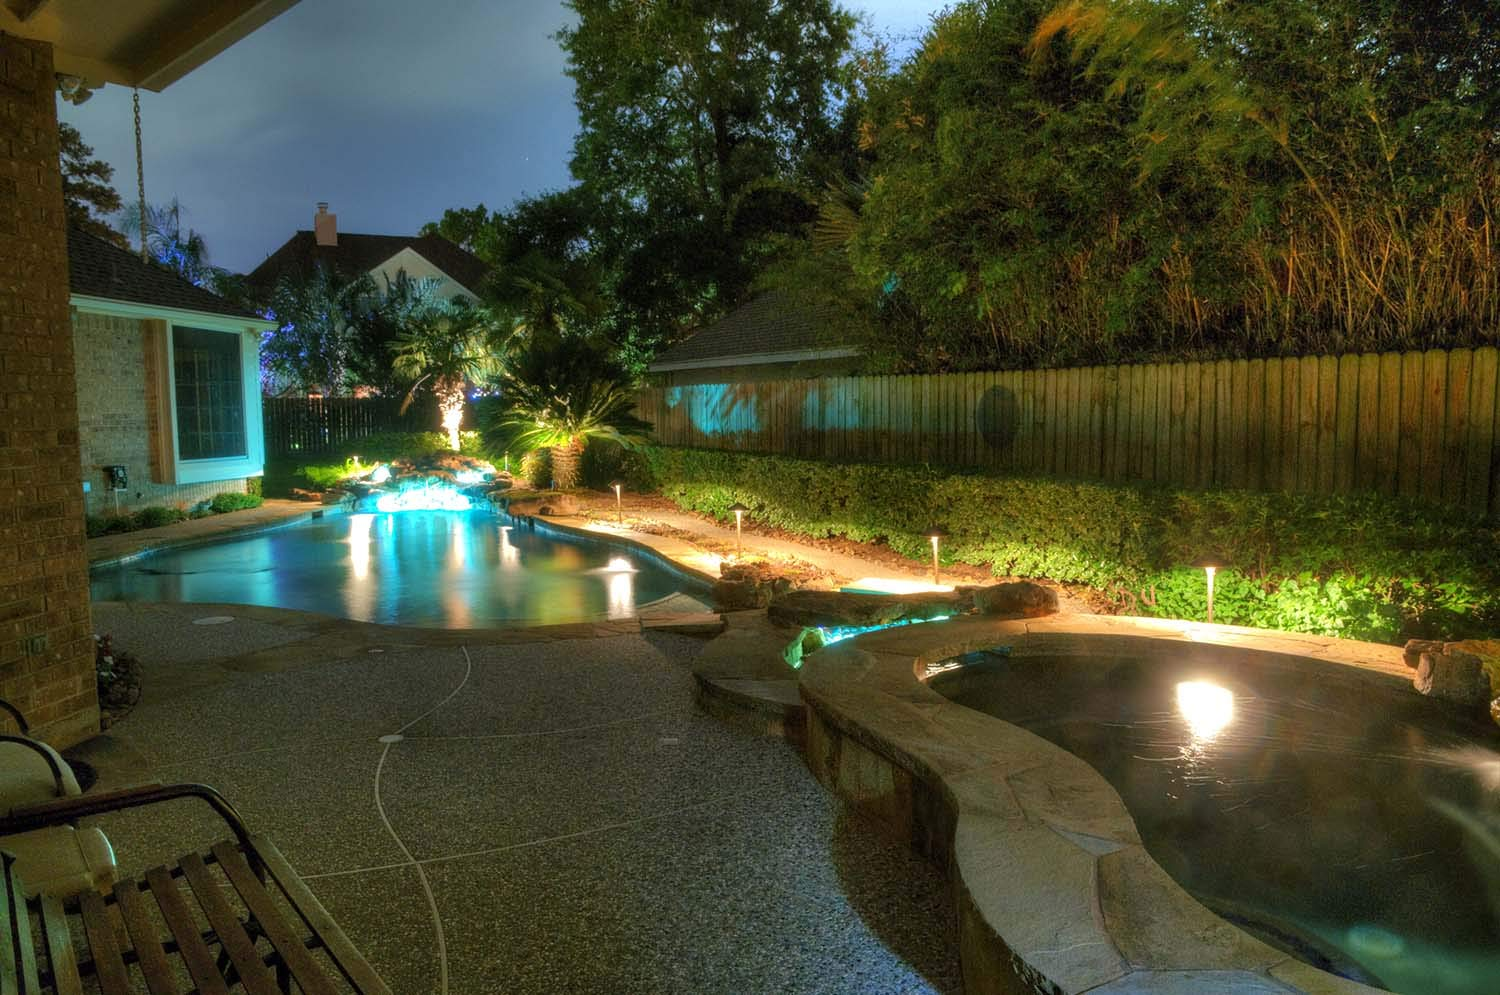 Underwater Light by MIK Solutions Solid Brass 7WMR16 LED Bulb Pond Light Submersible Waterfall Pool Fountain Light for Beautiful Bright Long Lasting Home Garden Patio Pool Area Lighting by MIK Solutions Outdoor Lighting (Image #4)